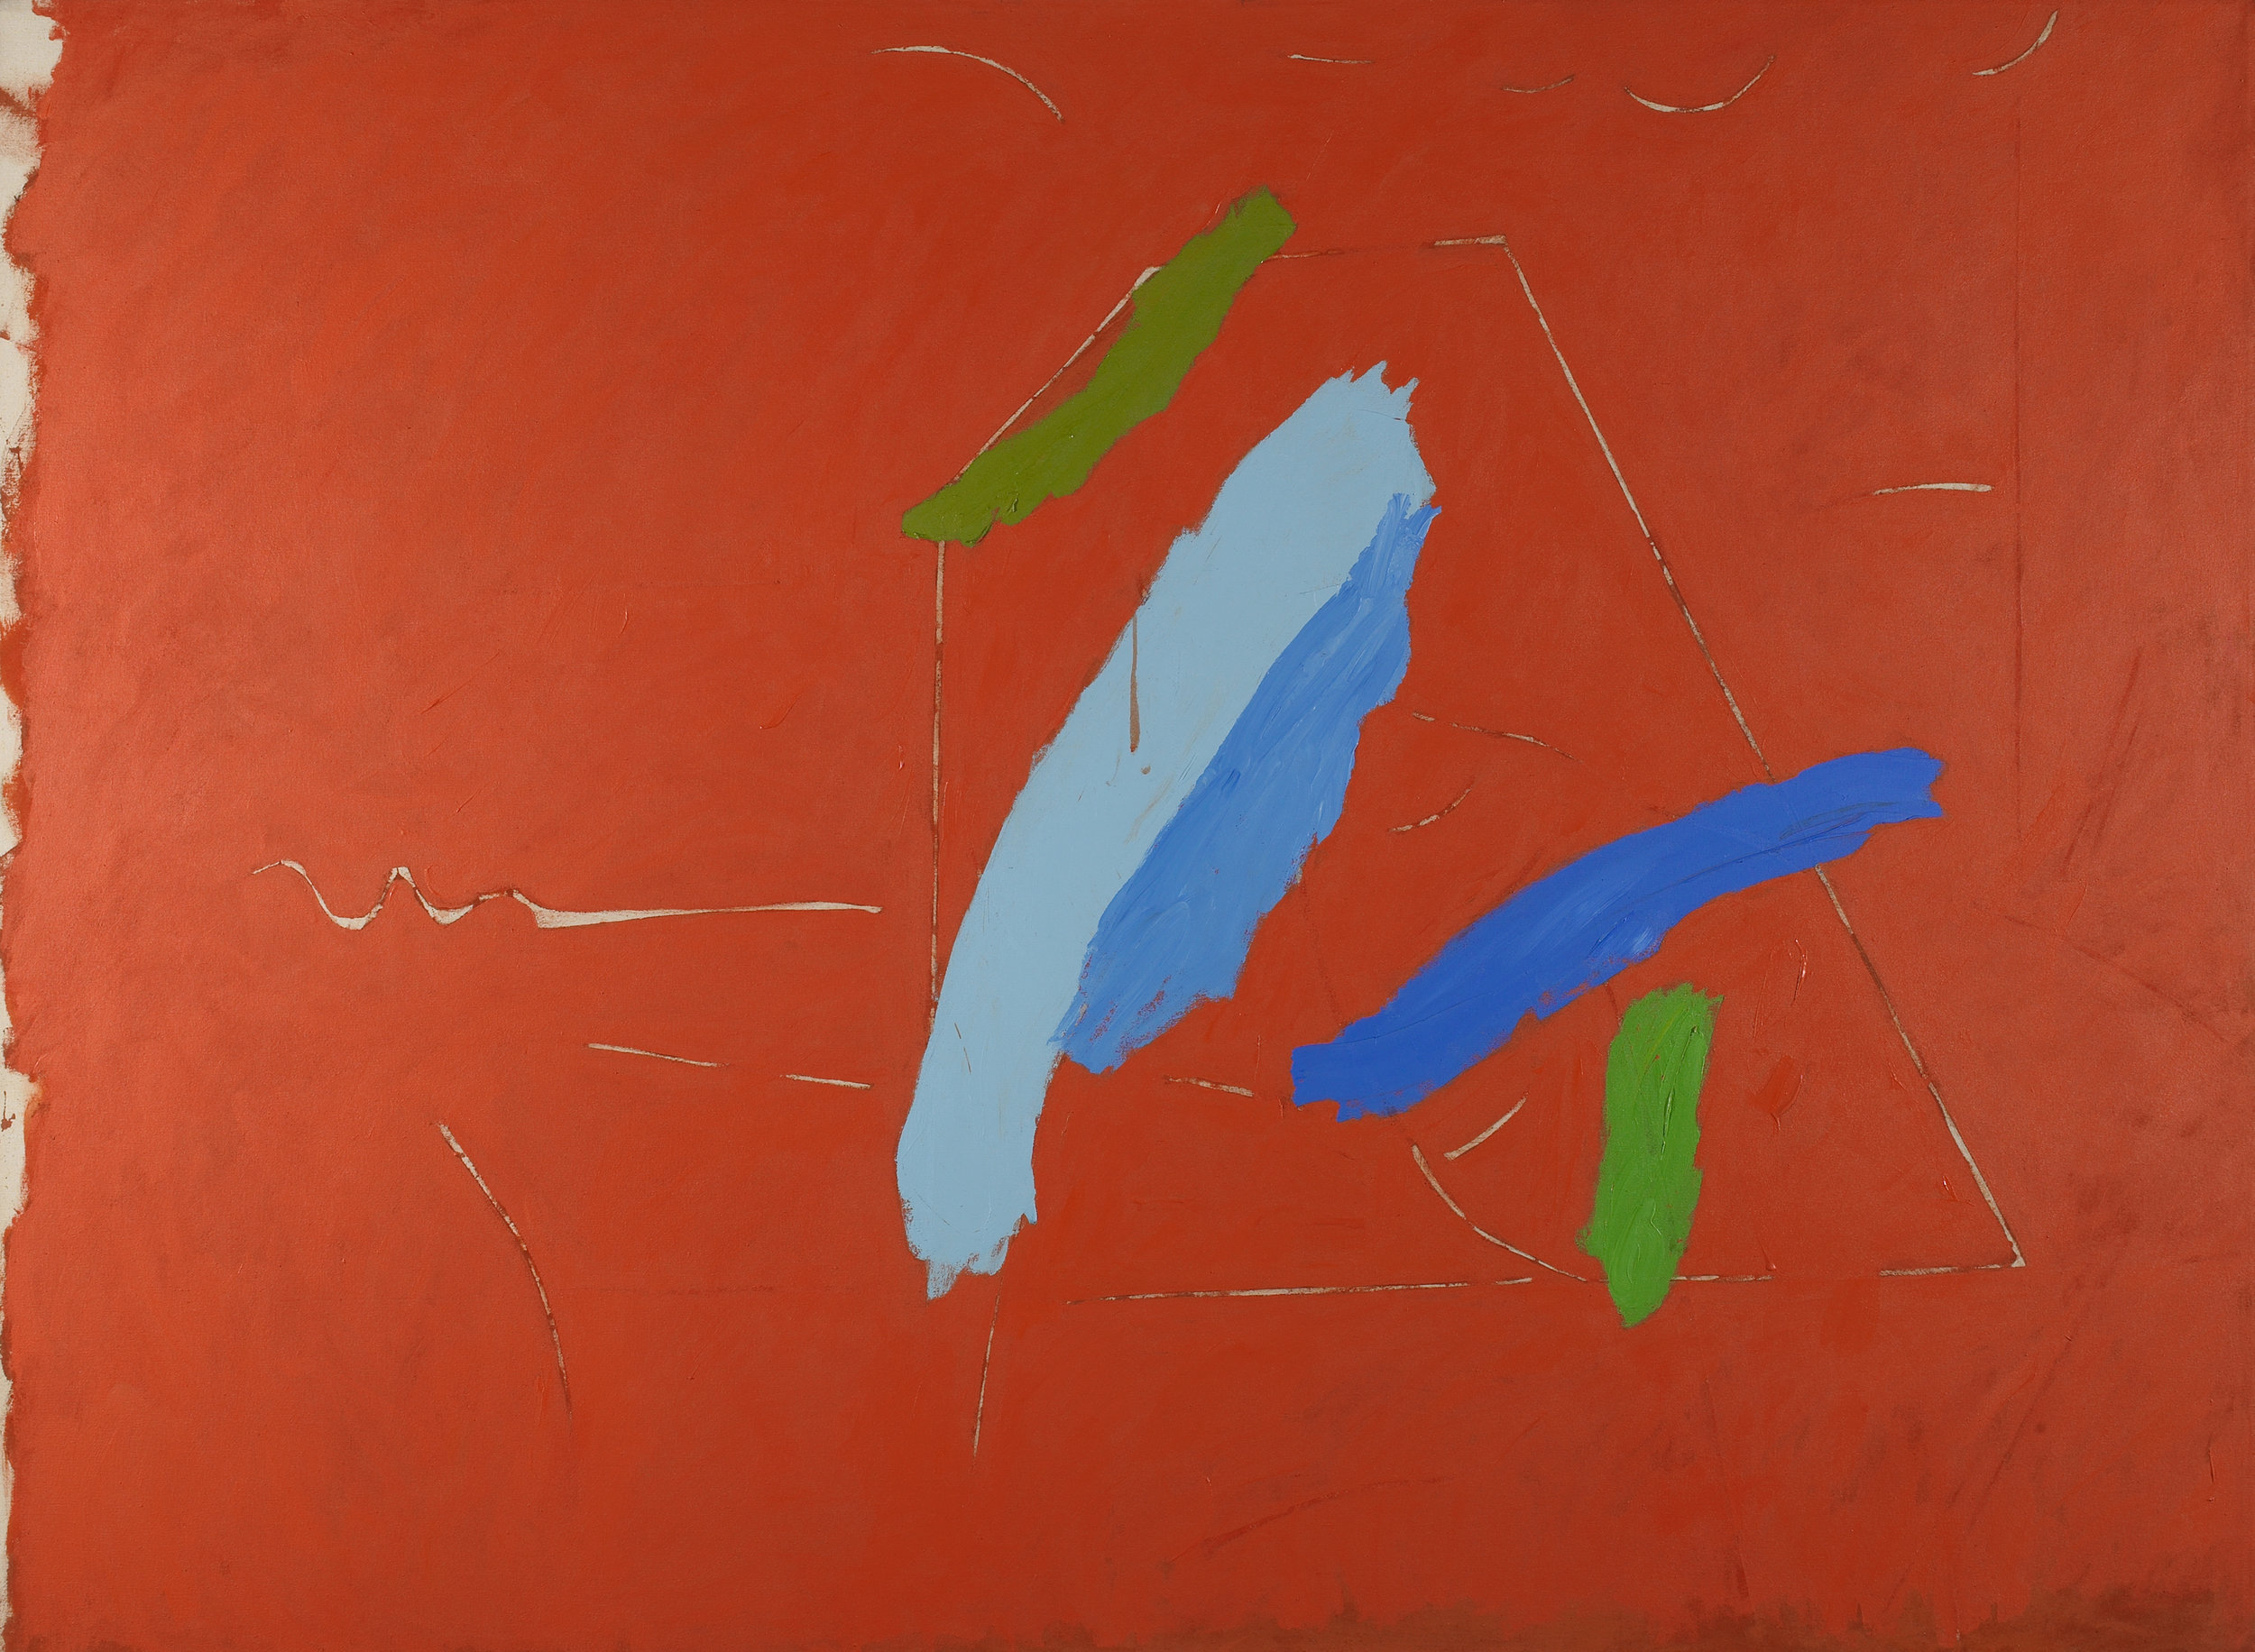 Untitled  , 1982, Acrylic on canvas, 66 x 90 inches